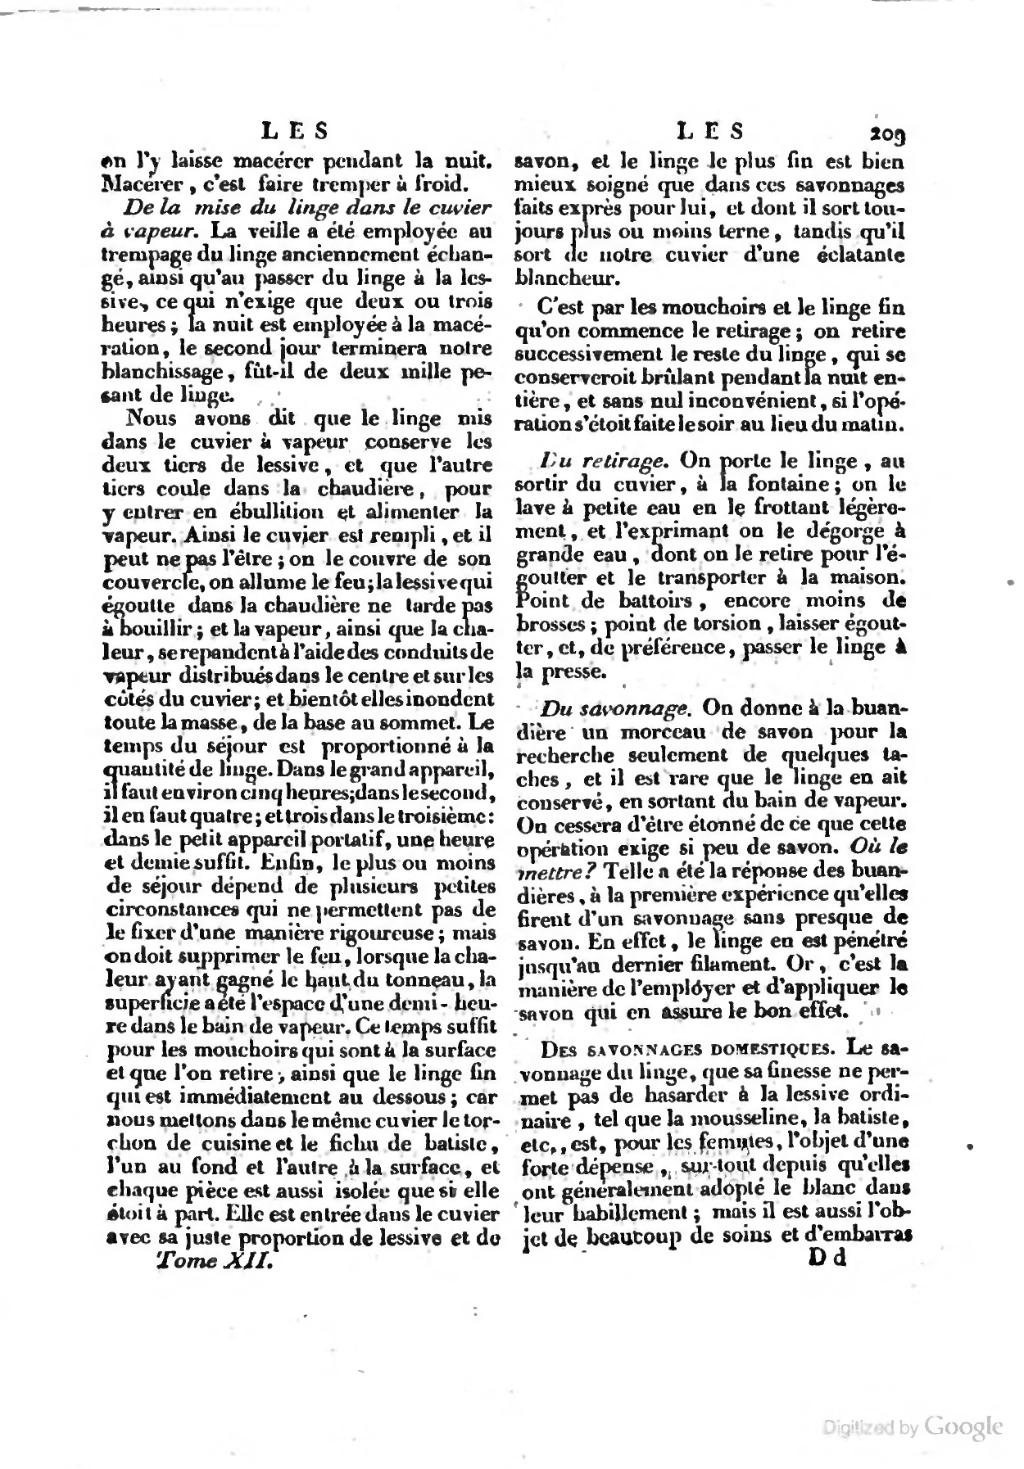 page rozier cours d agriculture 1805 tome wikisource. Black Bedroom Furniture Sets. Home Design Ideas